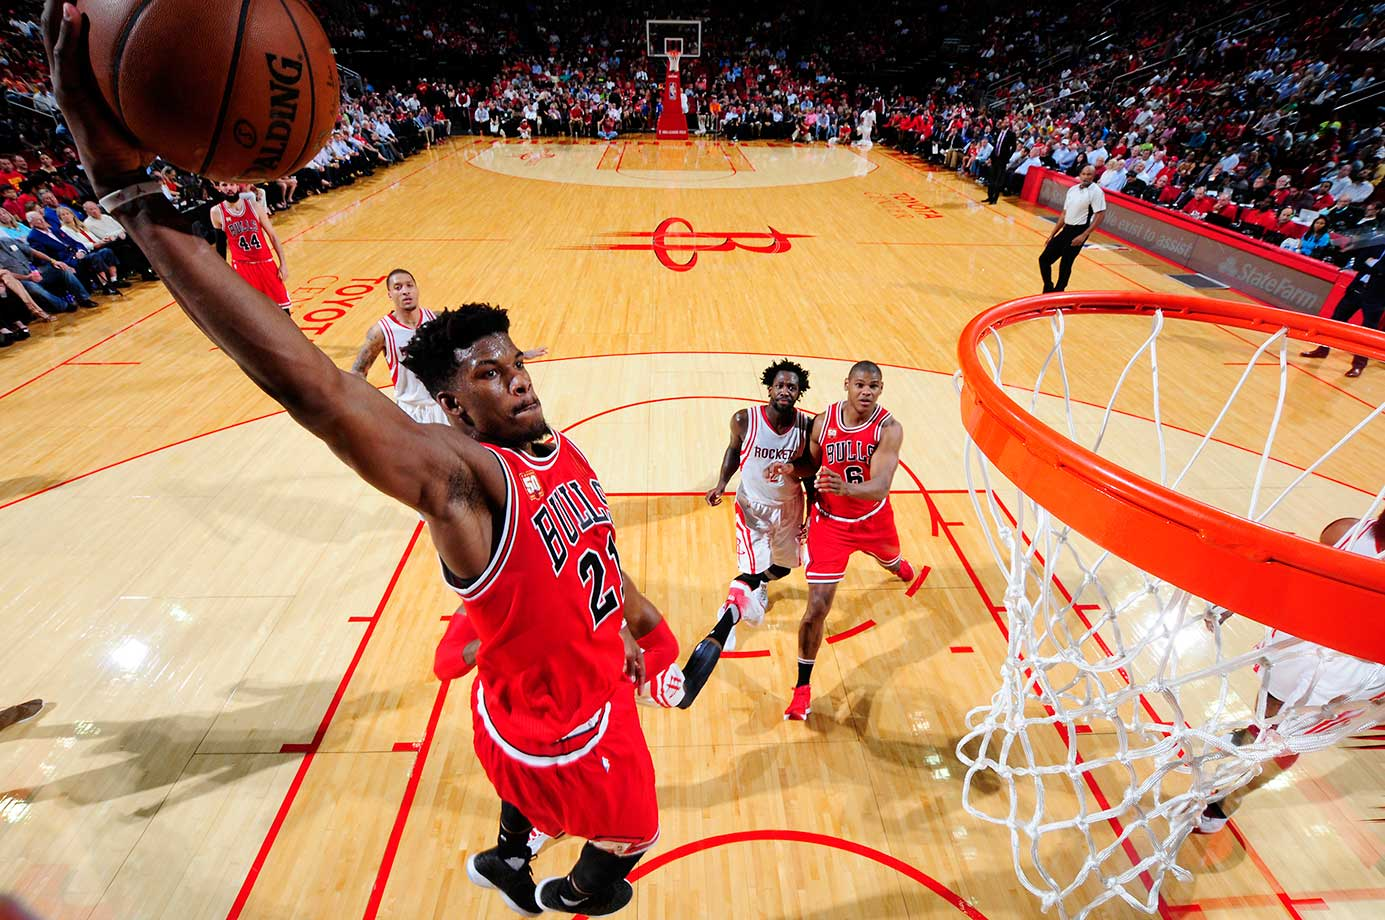 Jimmy Butler of the Chicago Bulls throws down from on high against the Houston Rockets.